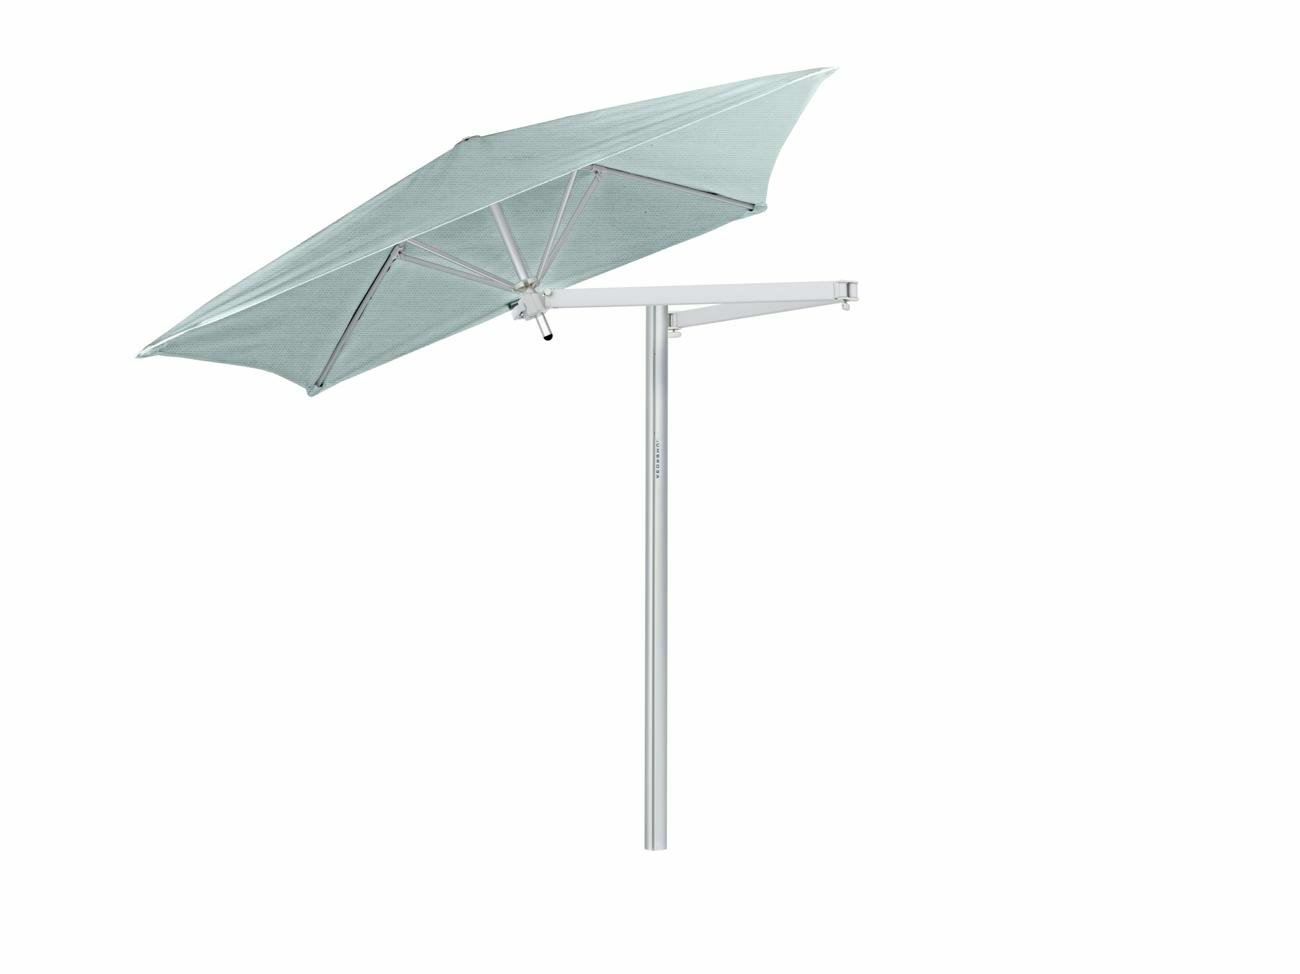 Paraflex cantilever umbrella square 1,9 m with Curacao fabric and a Neo arm